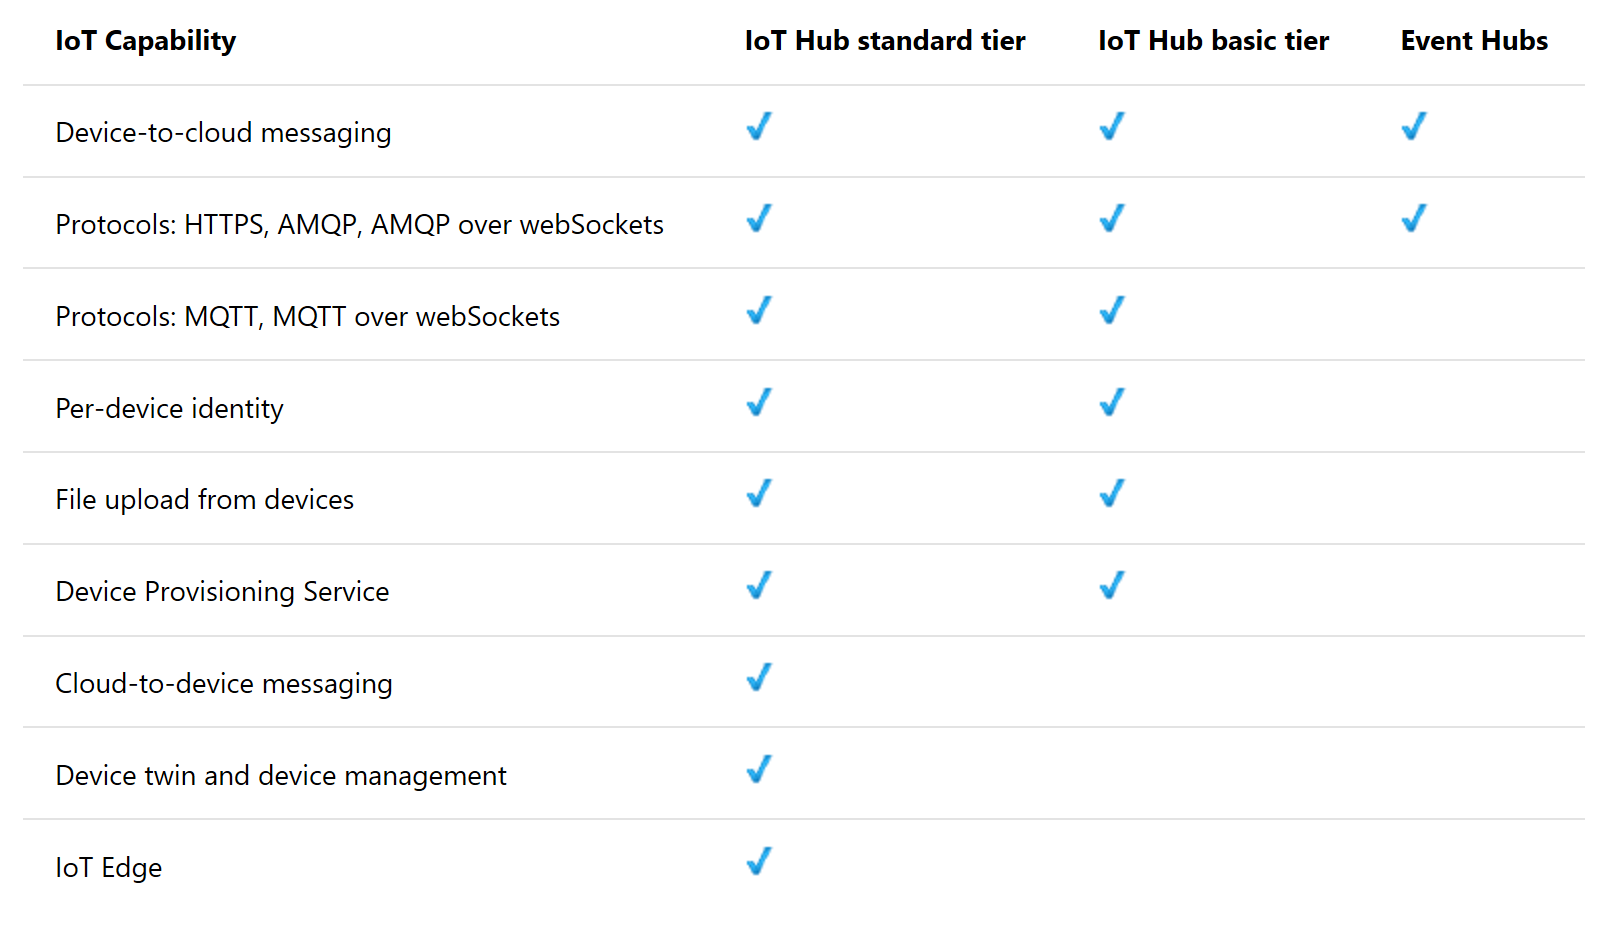 Table comparing streaming IoT capabilities